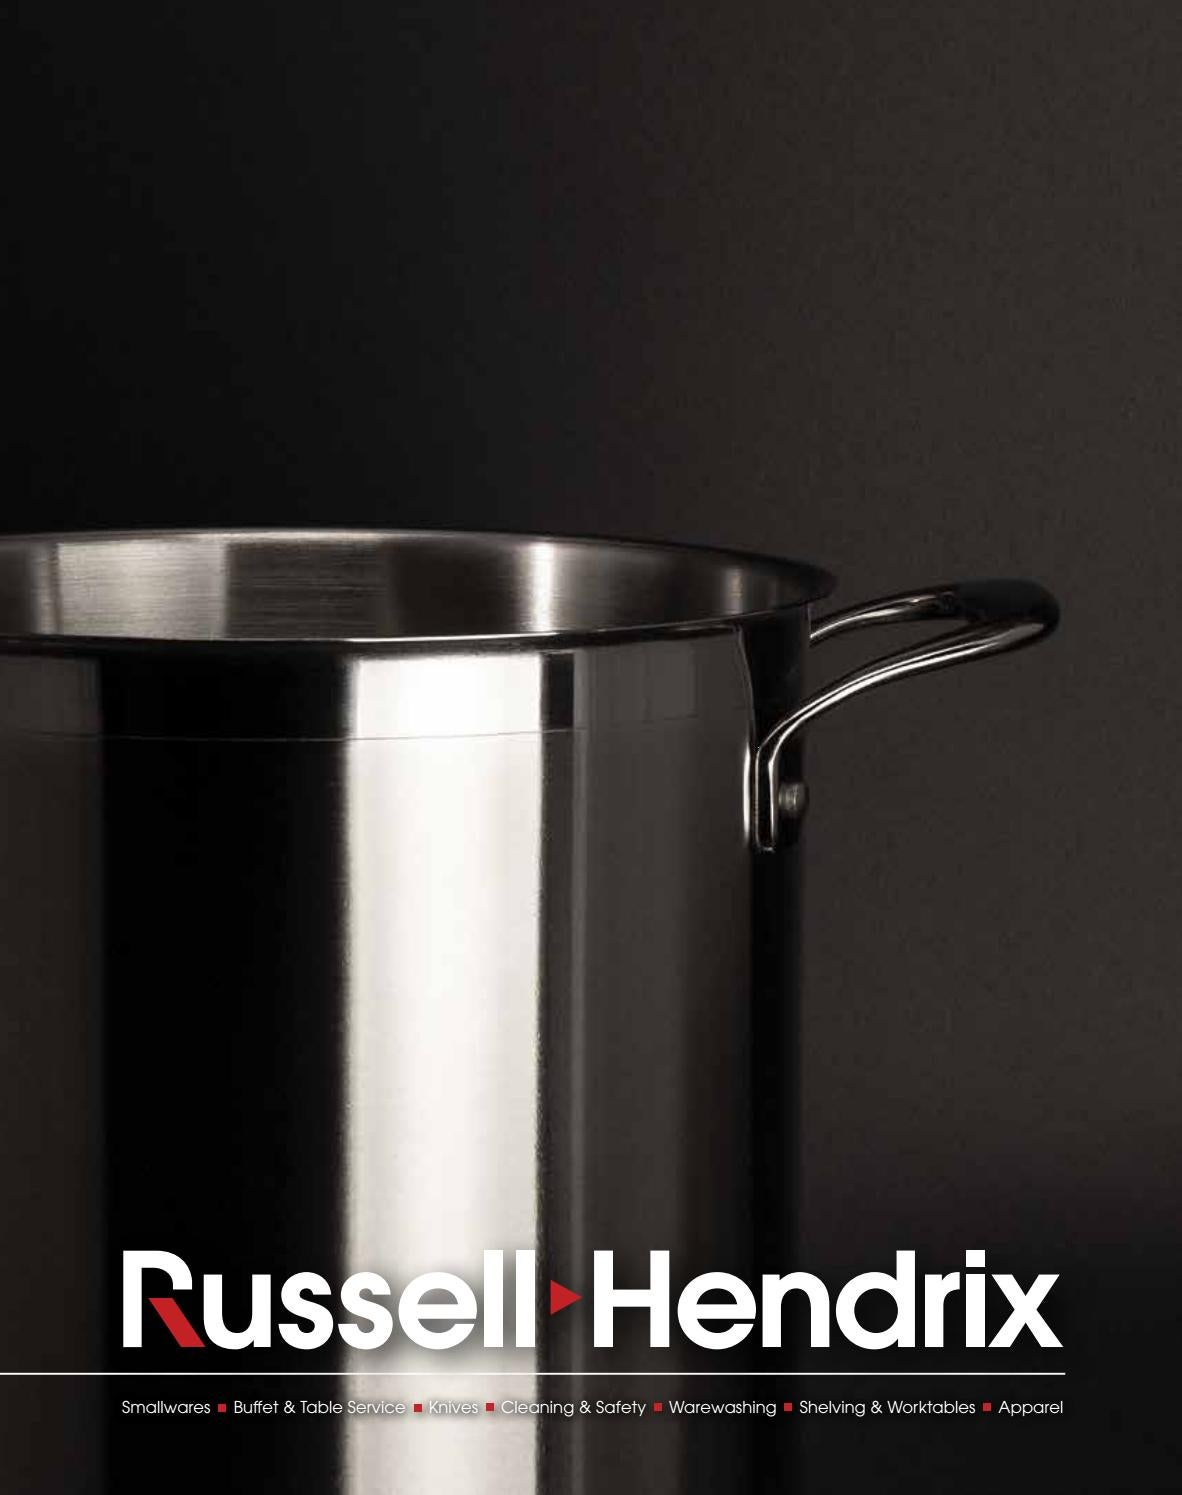 Russell Hendrix Smallwares Catalogue by Russell Hendrix Foodservice  Equipment   Supplies - issuu 48c52b605525